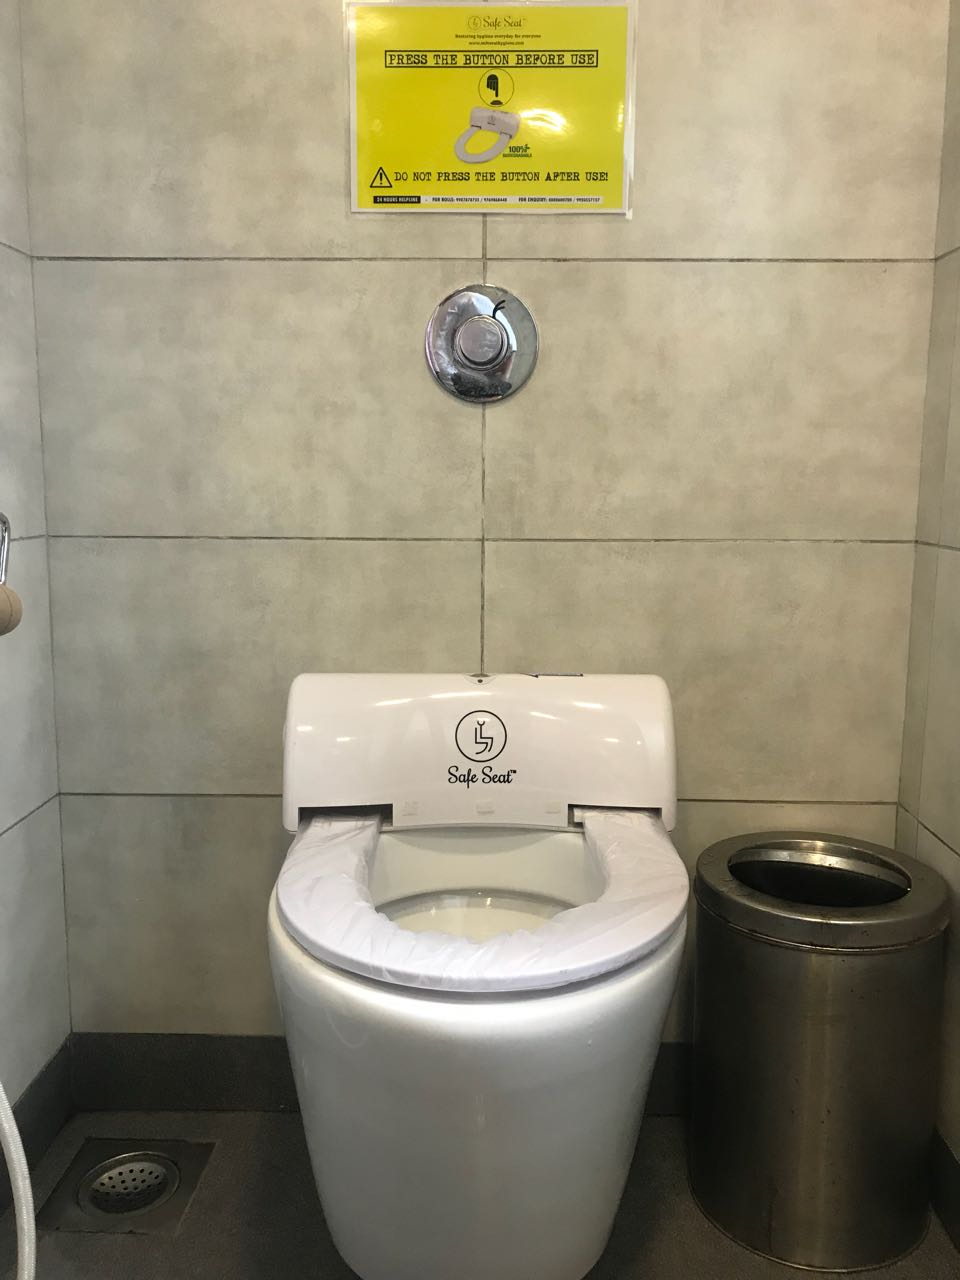 A Safe Seat toilet. (Source: Safe Seat)